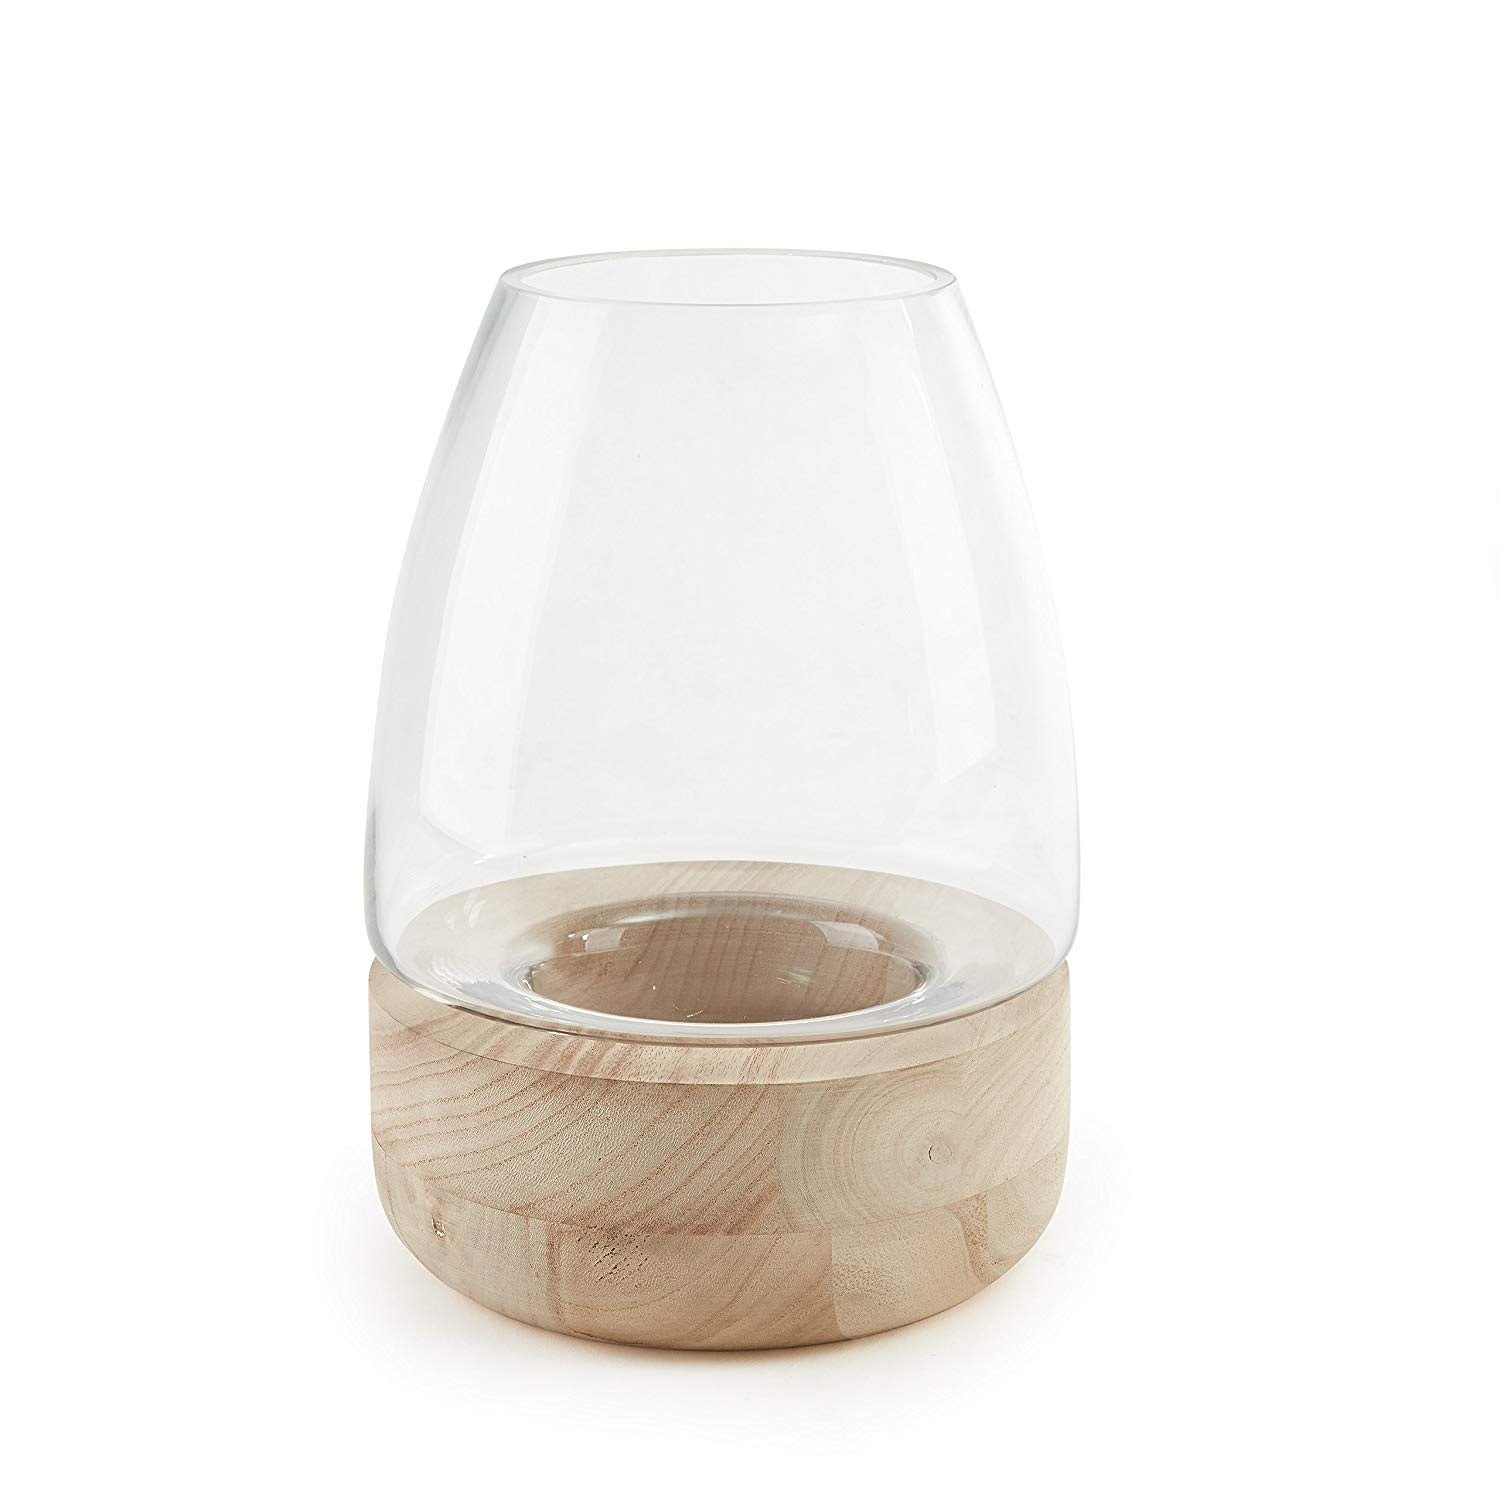 glass vase with wooden base of amazon com danya b bullet glass vase candle holder on wooden stand with regard to amazon com danya b bullet glass vase candle holder on wooden stand home kitchen